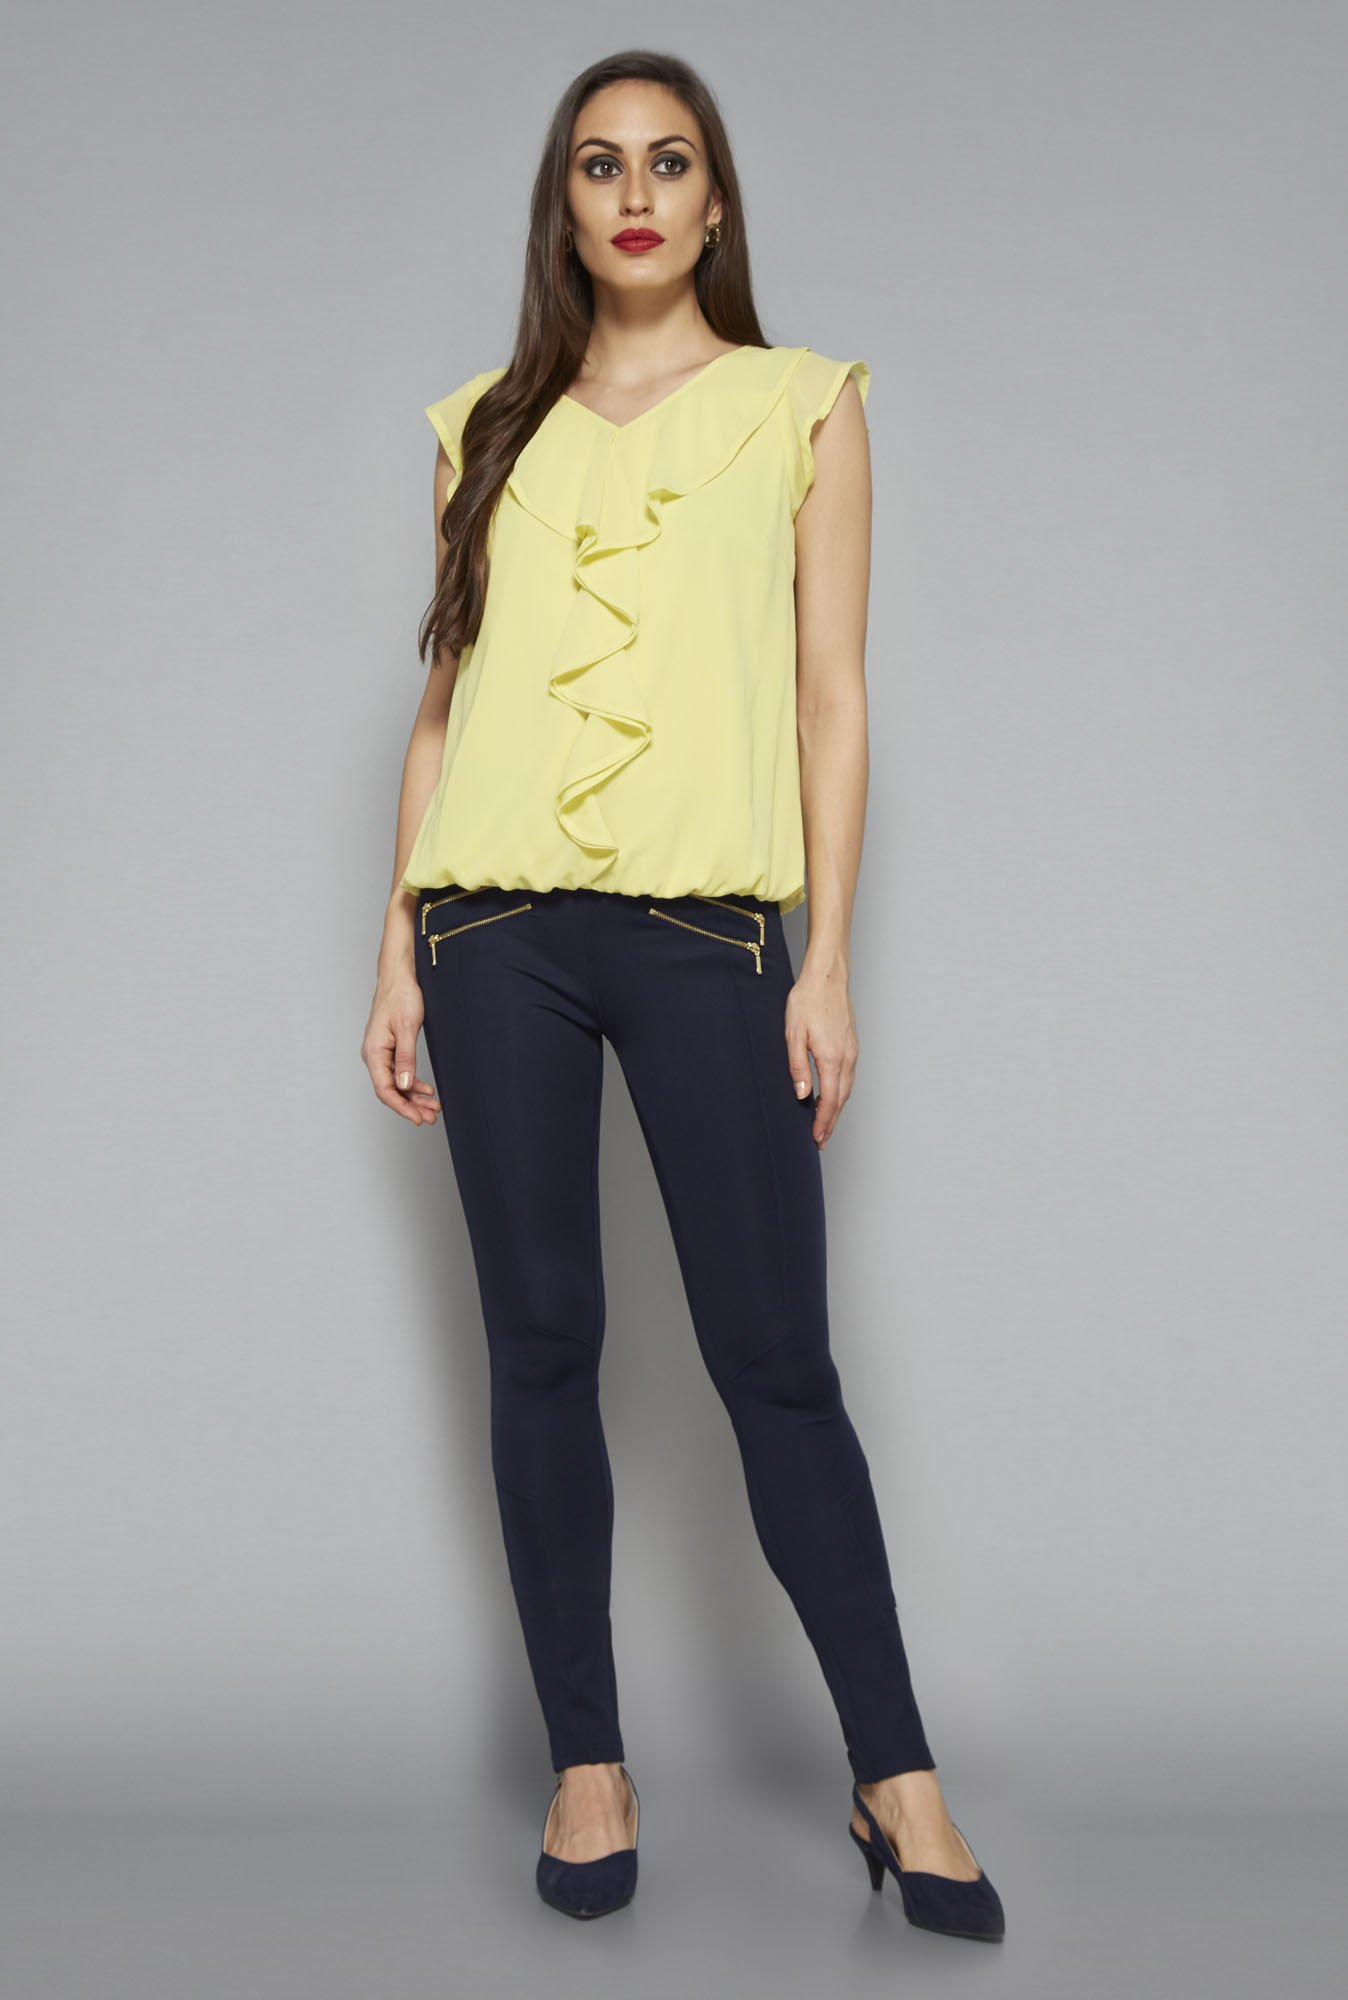 Wardrobe by Westside Yellow Lola Top